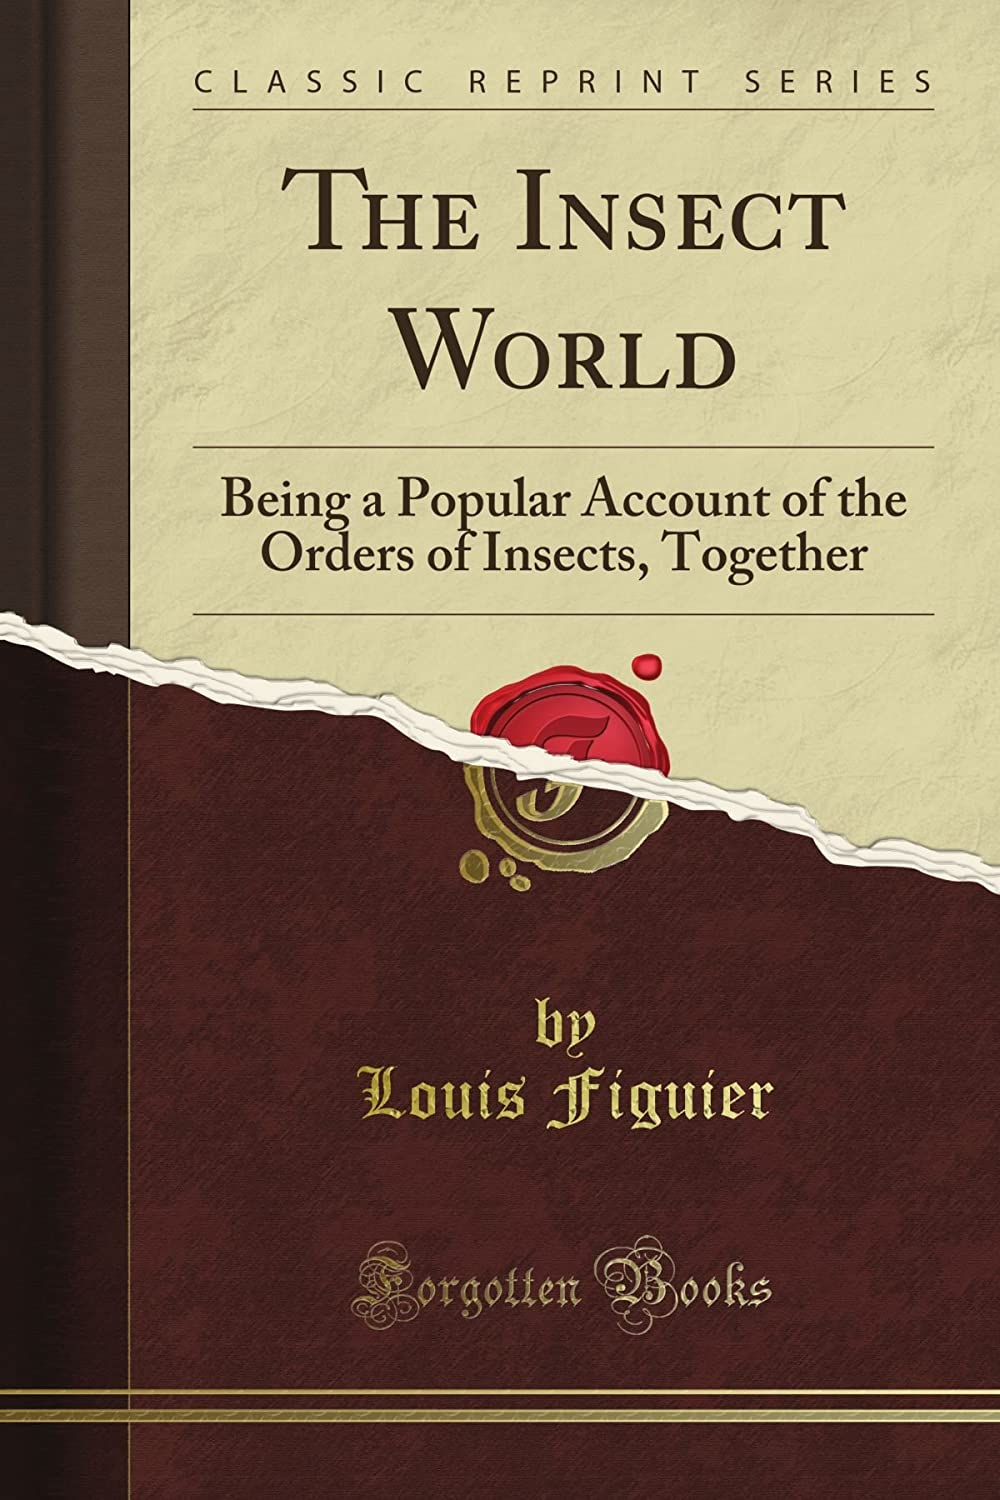 The Insect World: Being a Popular Account of the Orders of Insects, Together (Classic Reprint)